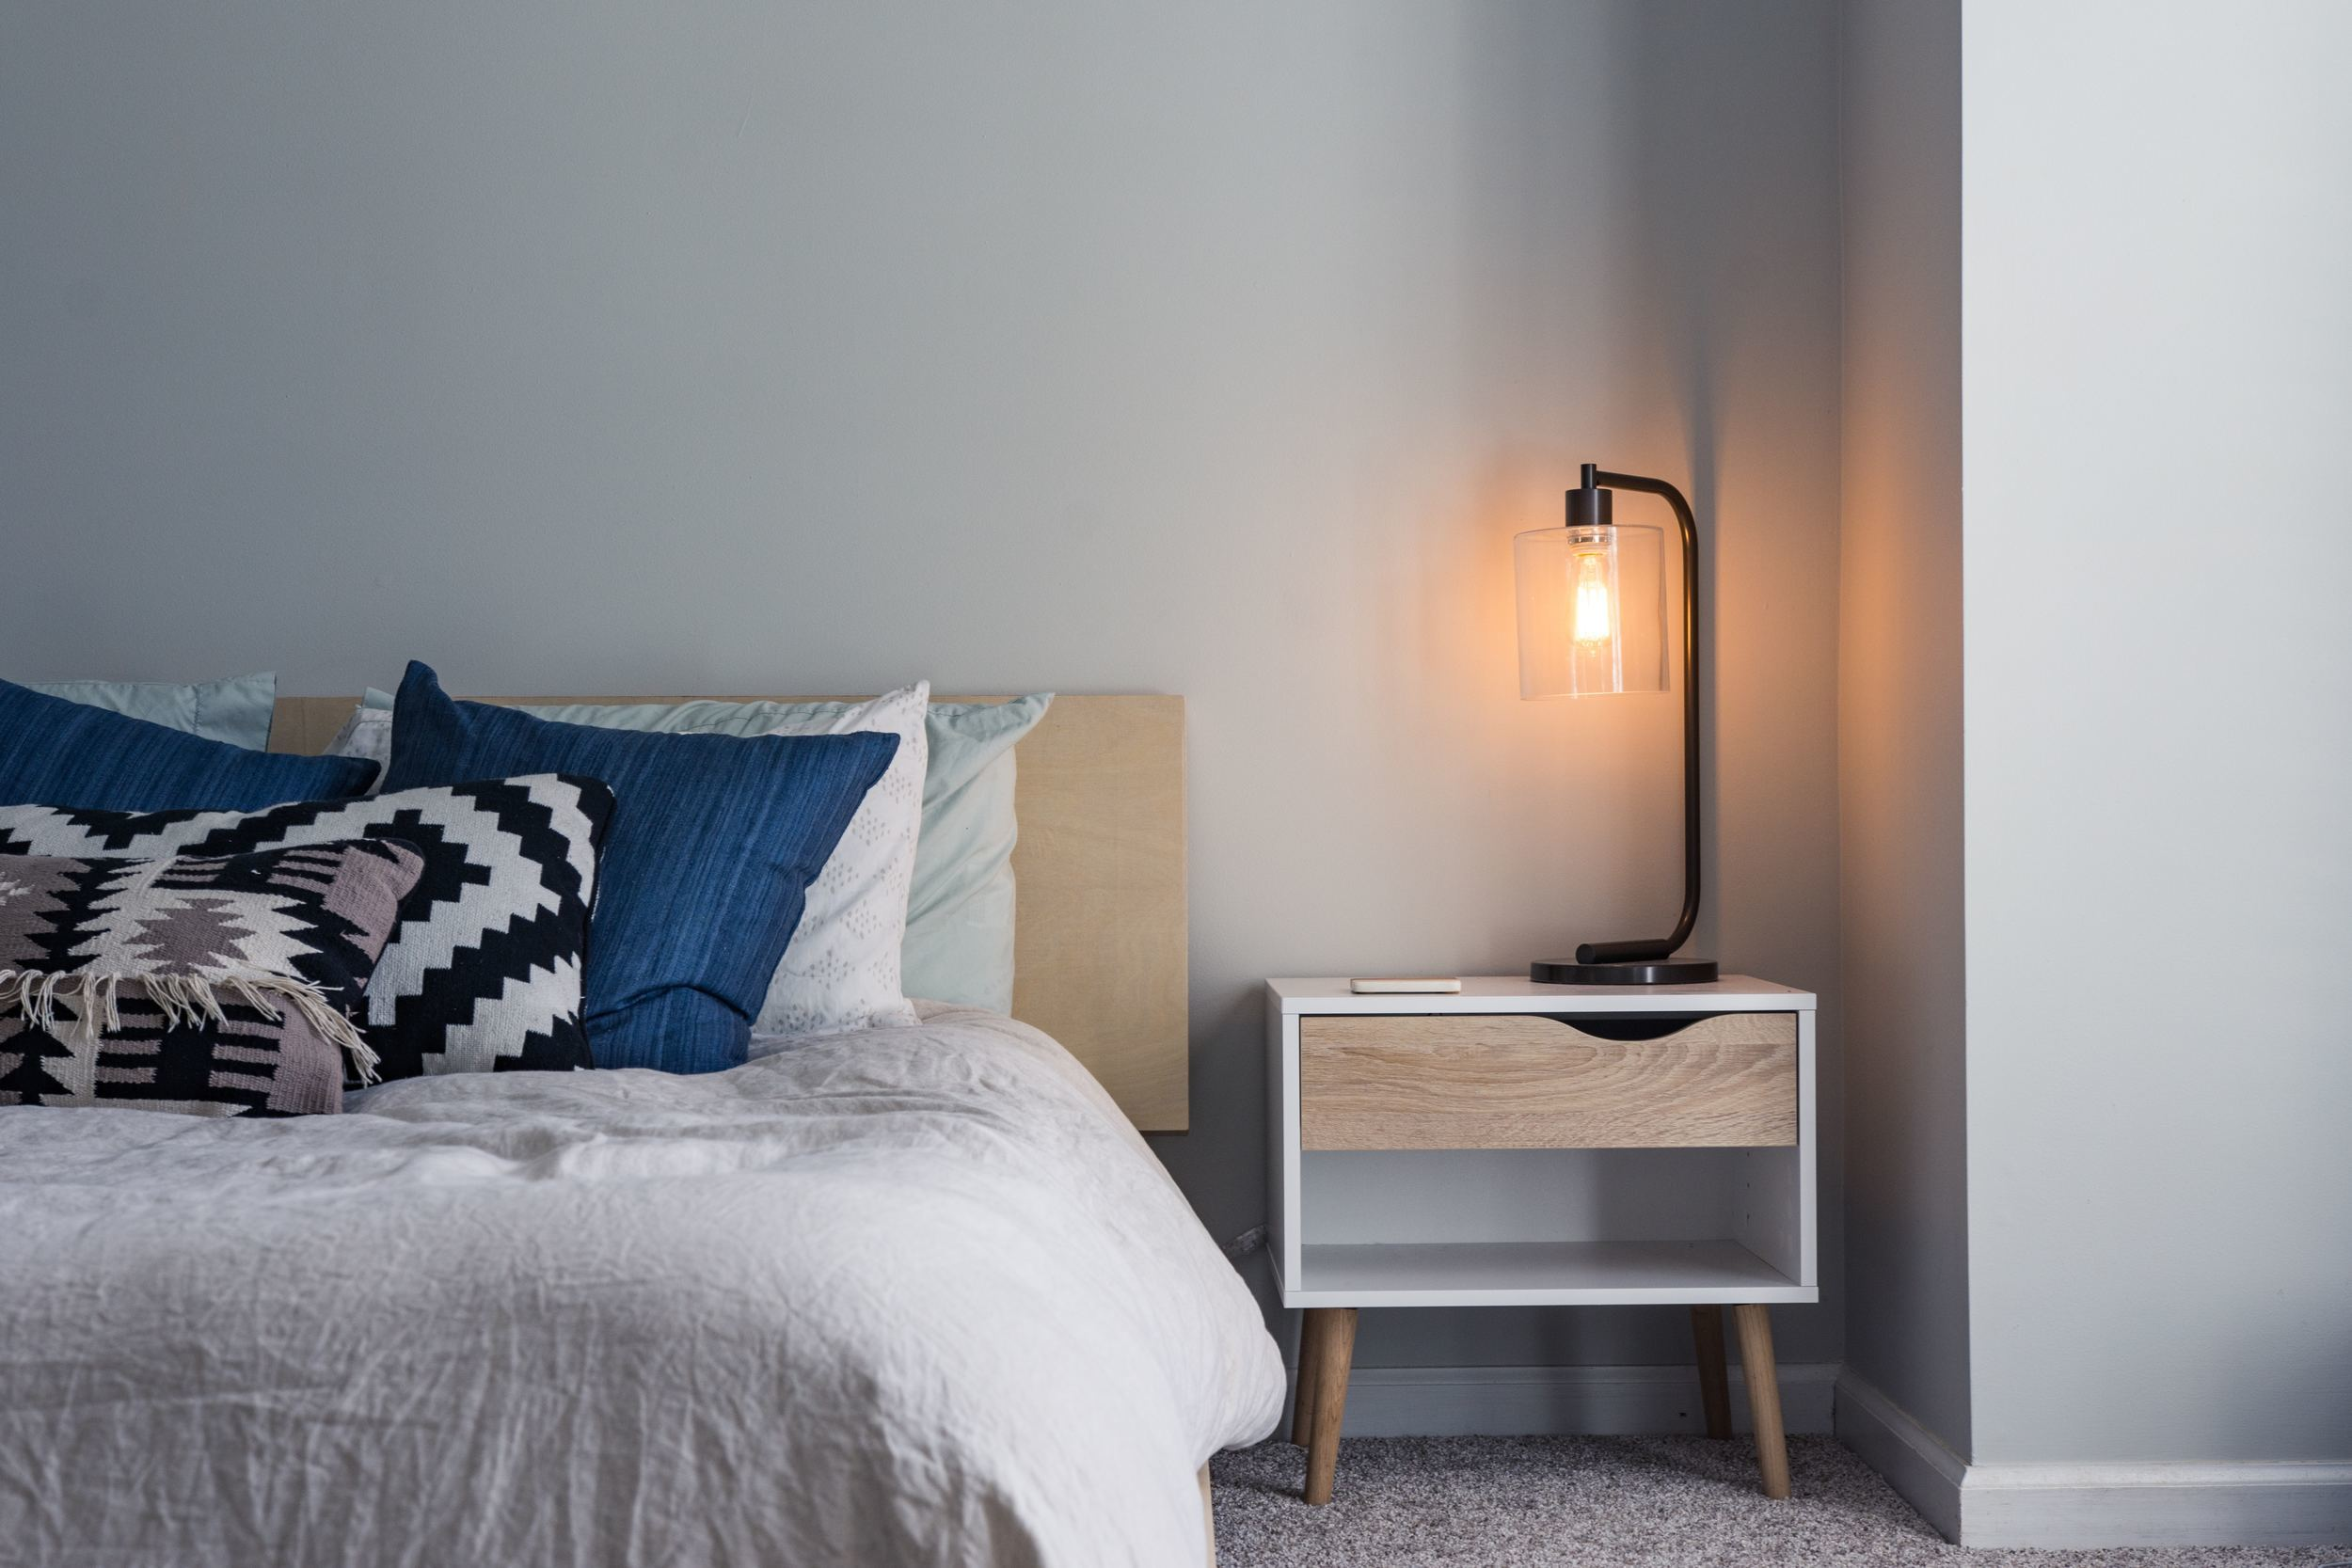 a made bed with a nightstand and an industrial lamp thats turned on